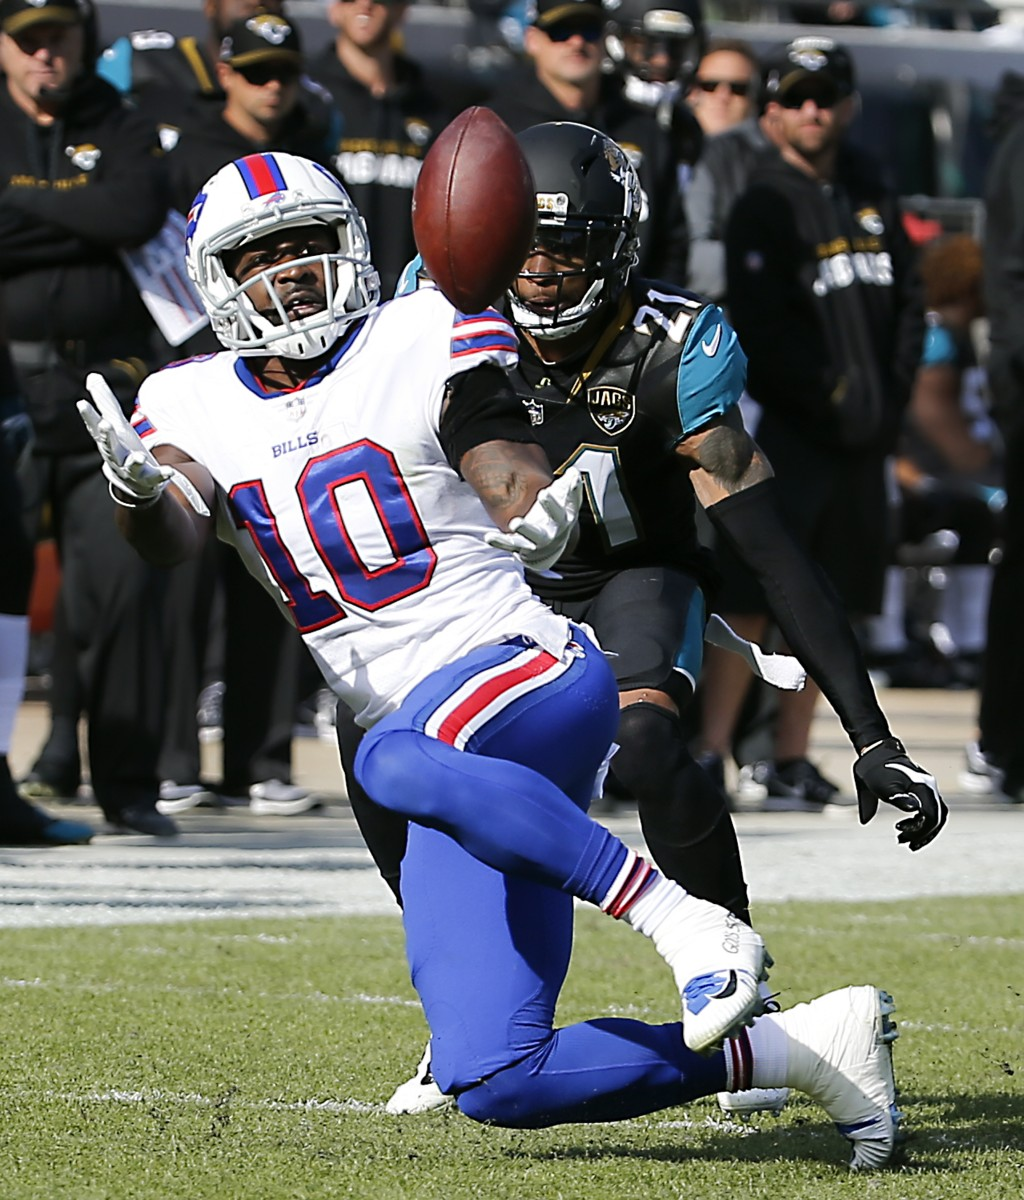 Jacksonville Jaguars cornerback A.J. Bouye right breaks up a pass intended for Buffalo Bills wide receiver Deonte Thompson in the first half